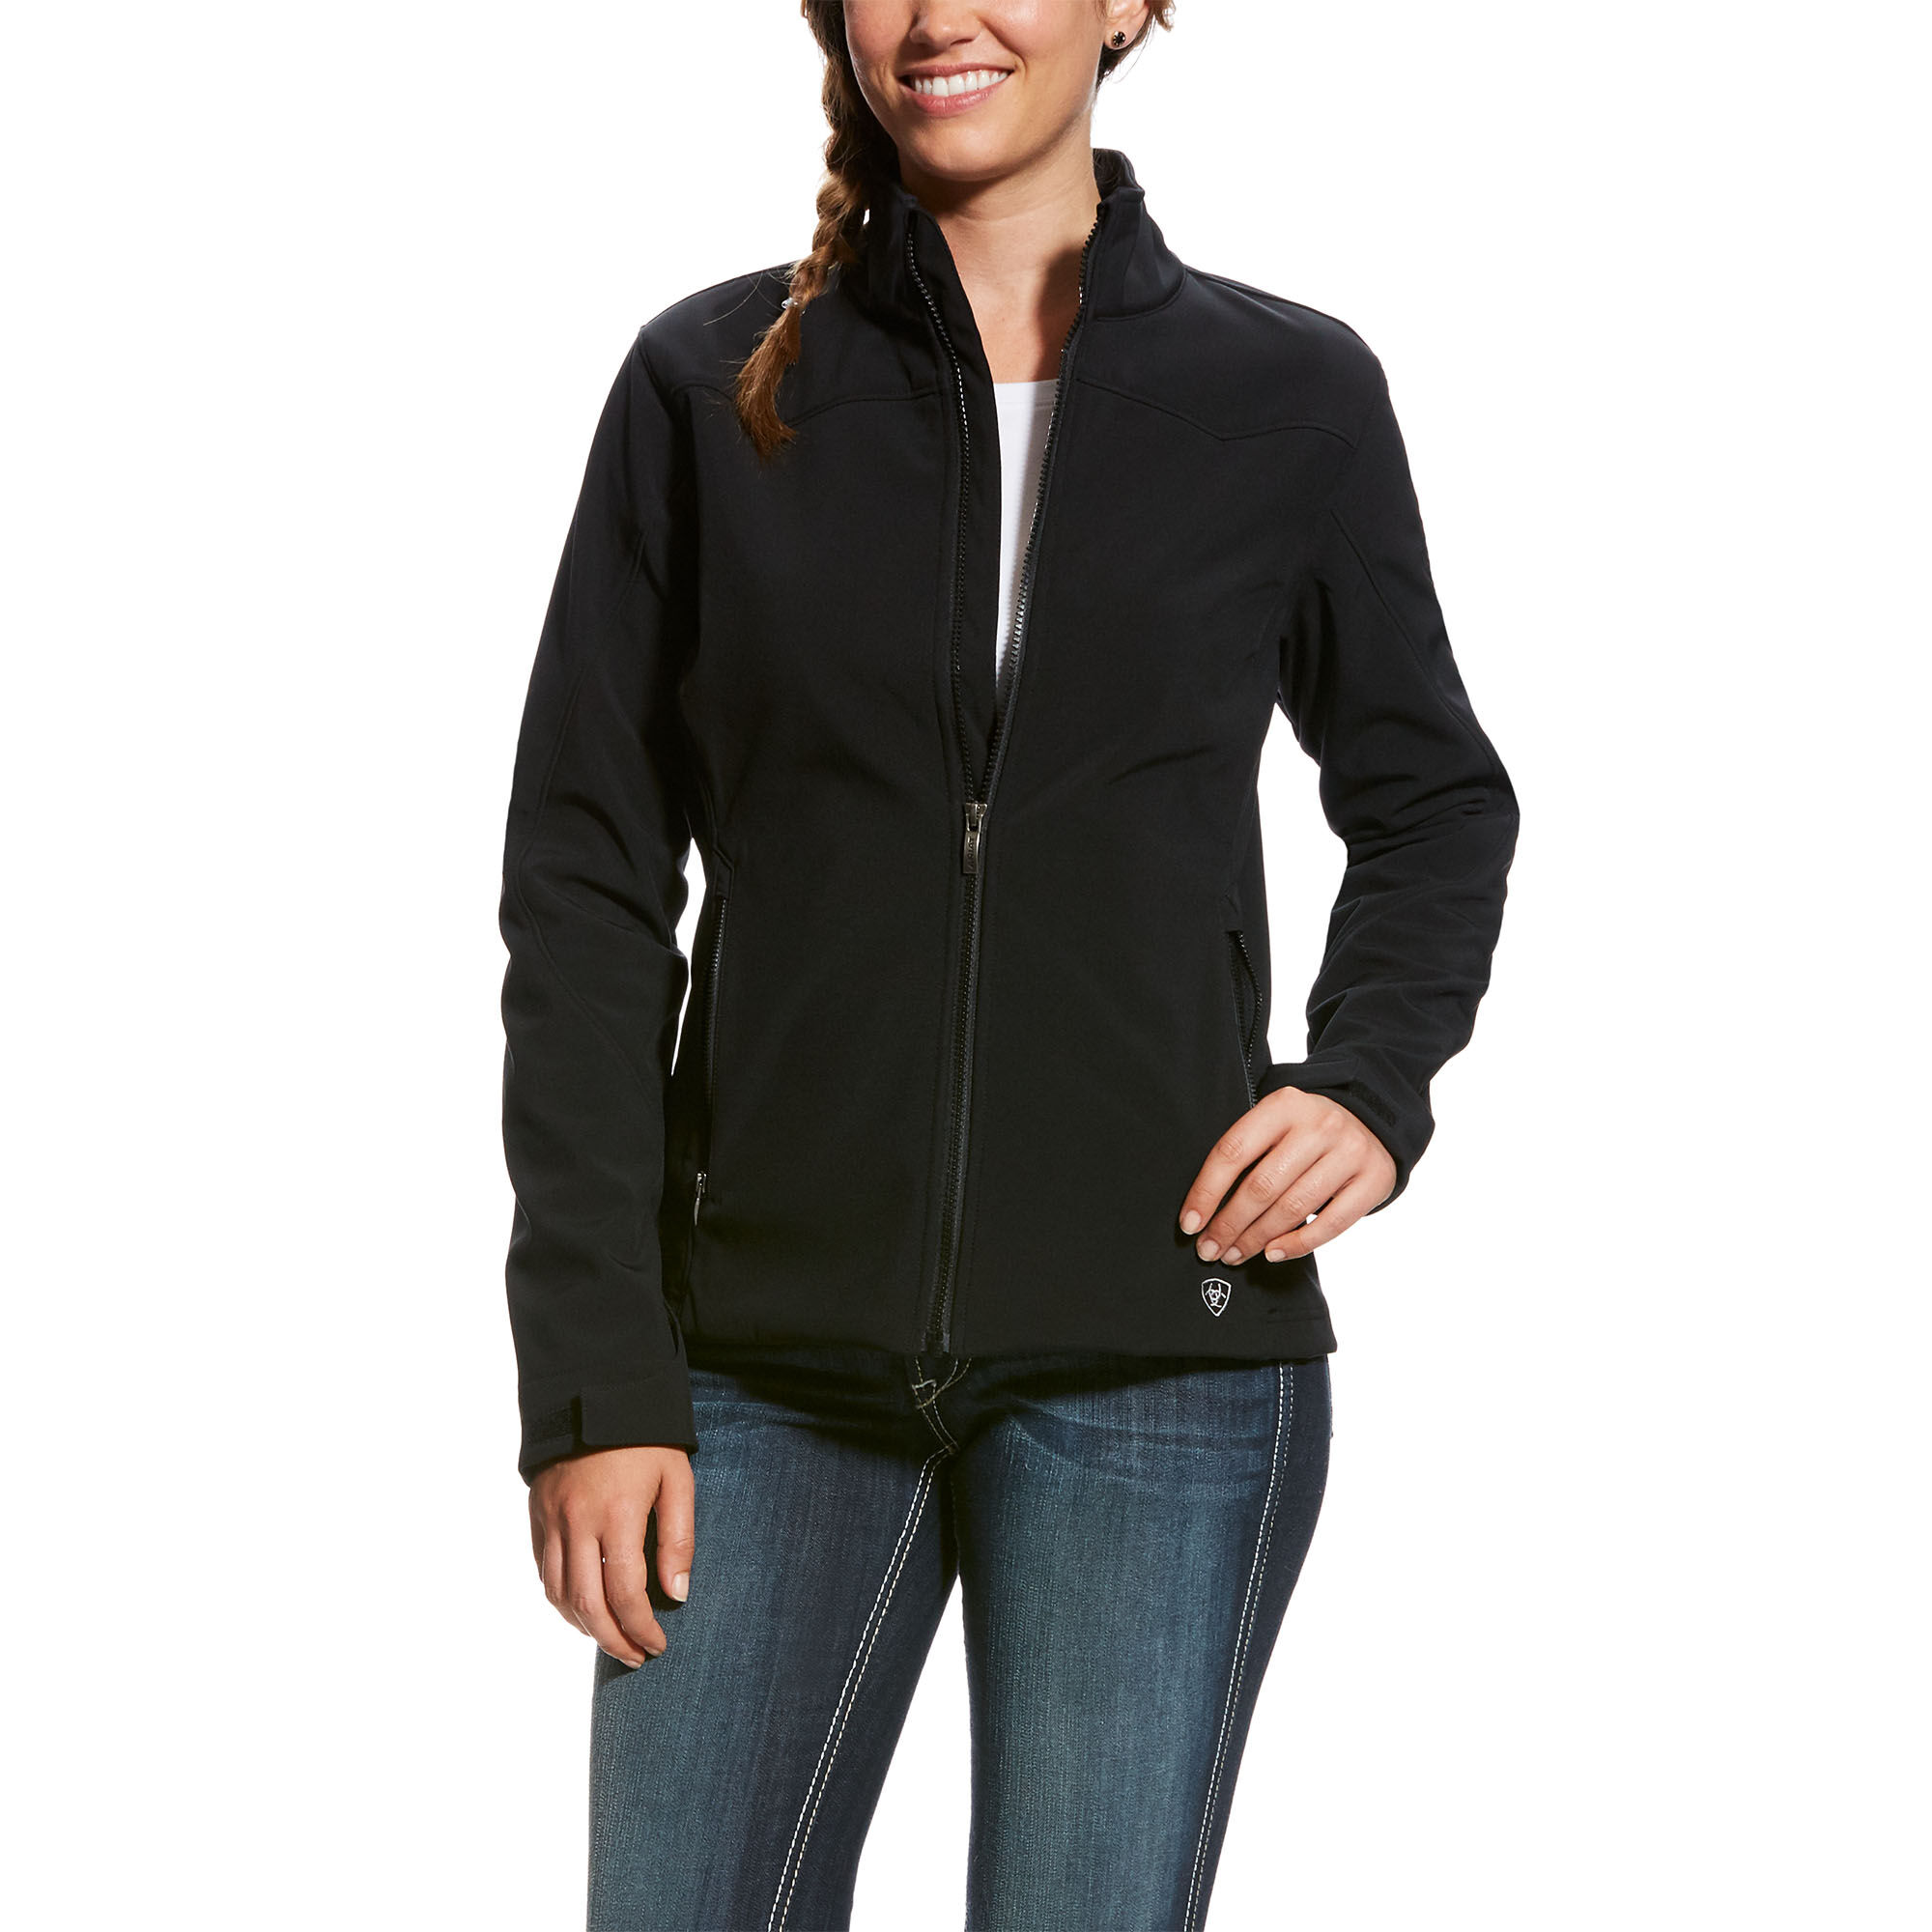 Edge Softshell Conceal and Carry Jacket